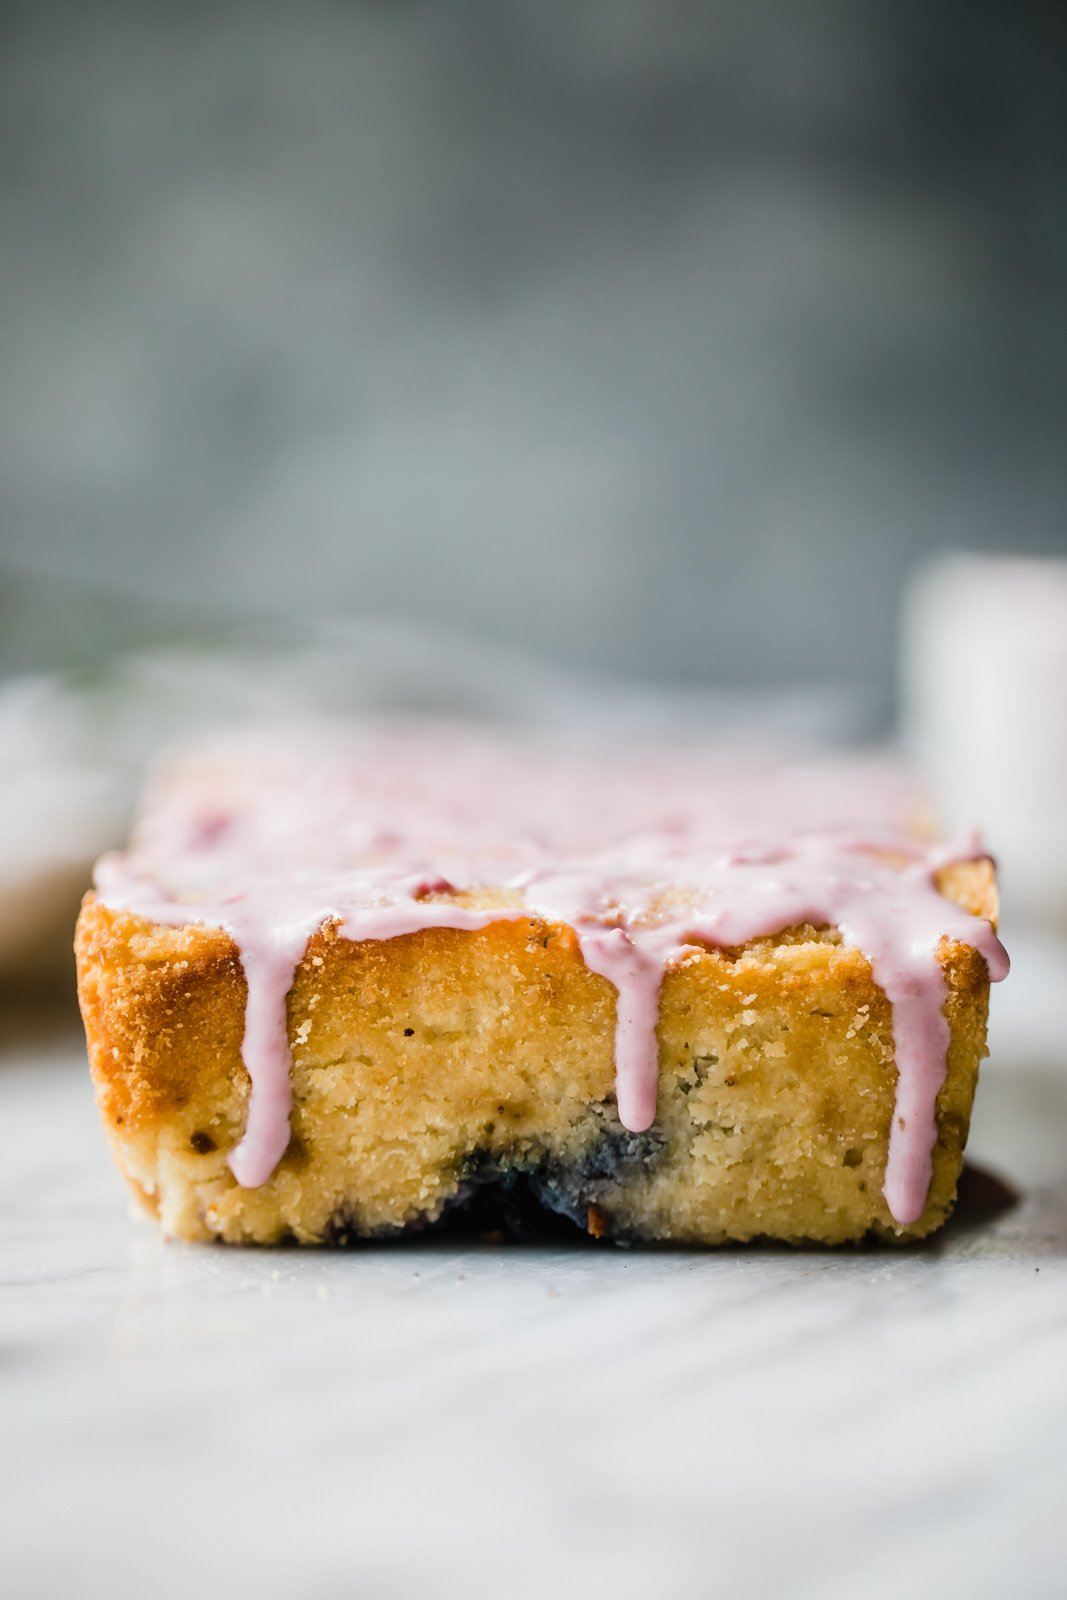 paleo lemon blueberry bread drizzled with pink glaze on a marble slab